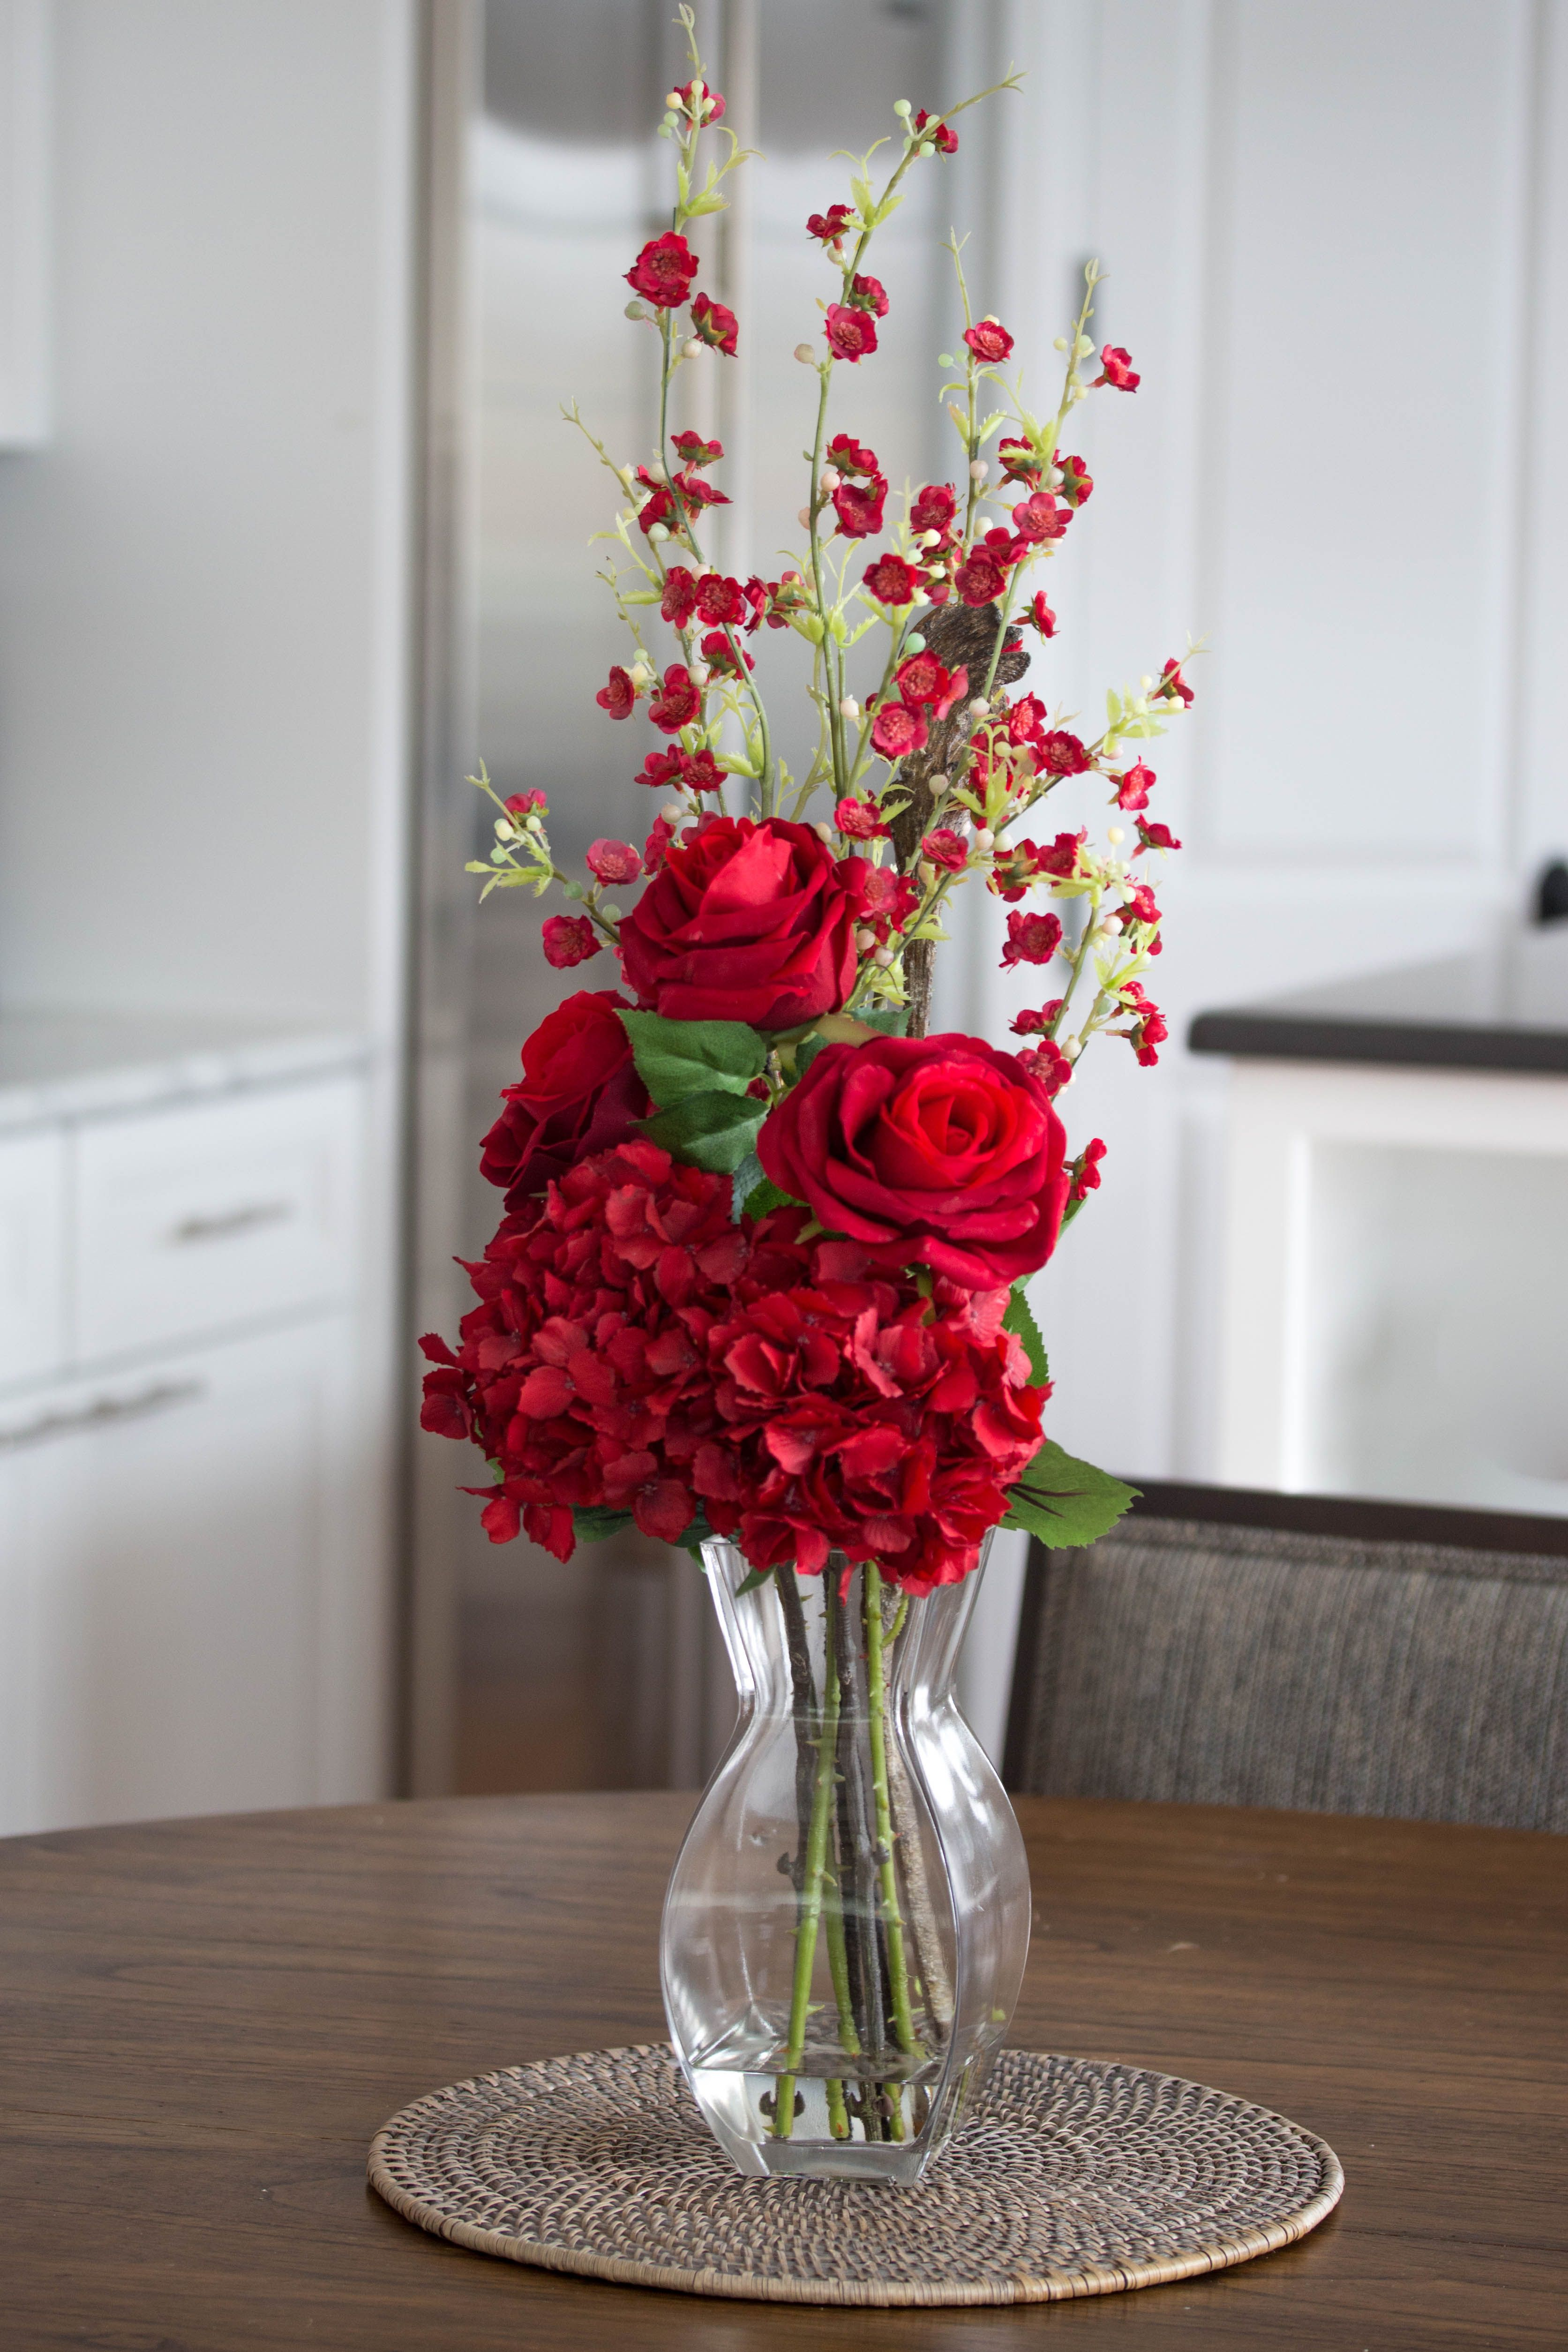 Red Hydrangea Cherry Blossom And Rose Arrangement Silk Flower Arrangement Red Cherry Blossom Centerpiece Red Flower Arrangements Red Wedding Centerpieces